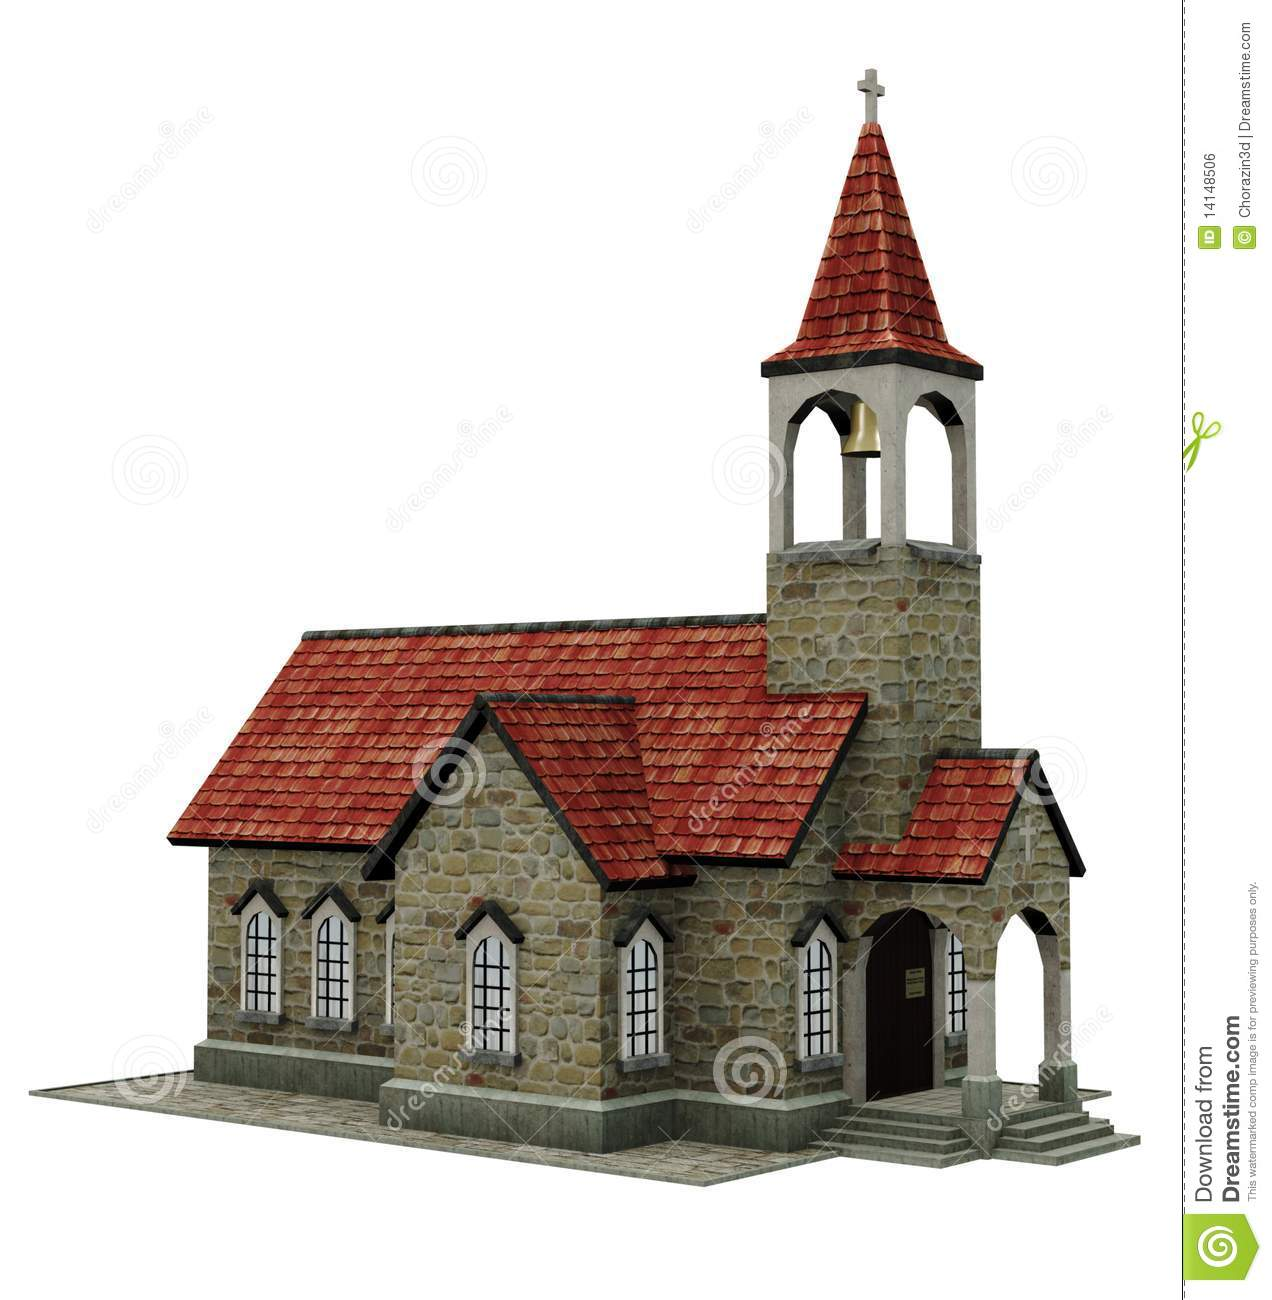 Fantasy church building stock illustration image of for Build house online 3d free